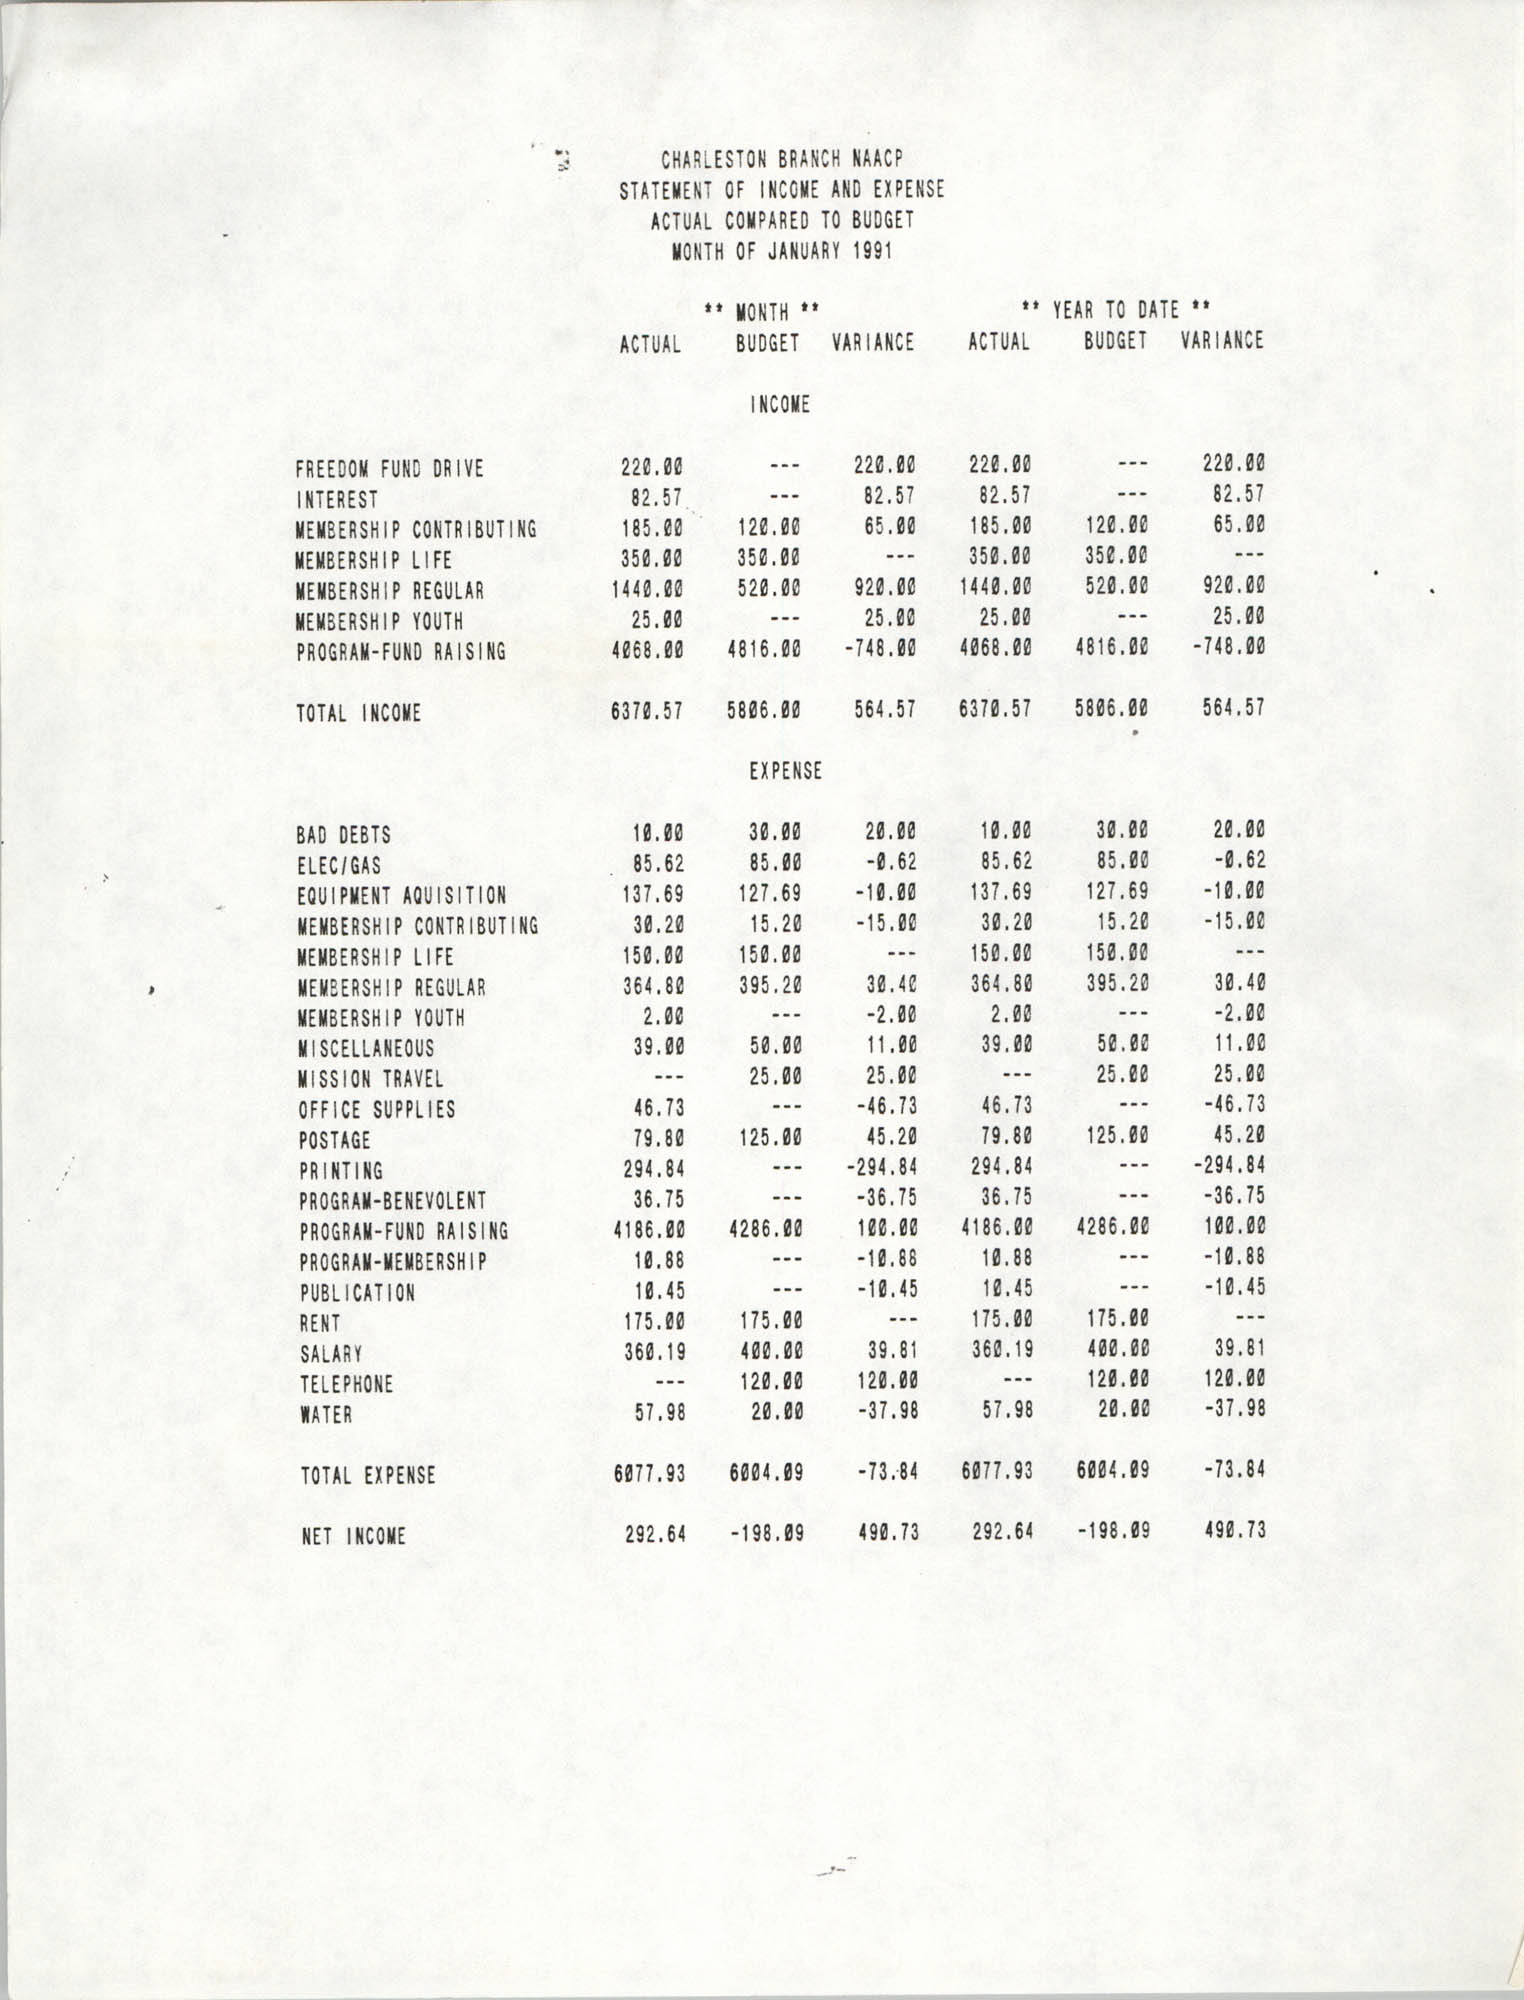 Charleston Branch of the NAACP Statement of Income and Expense, January 1991